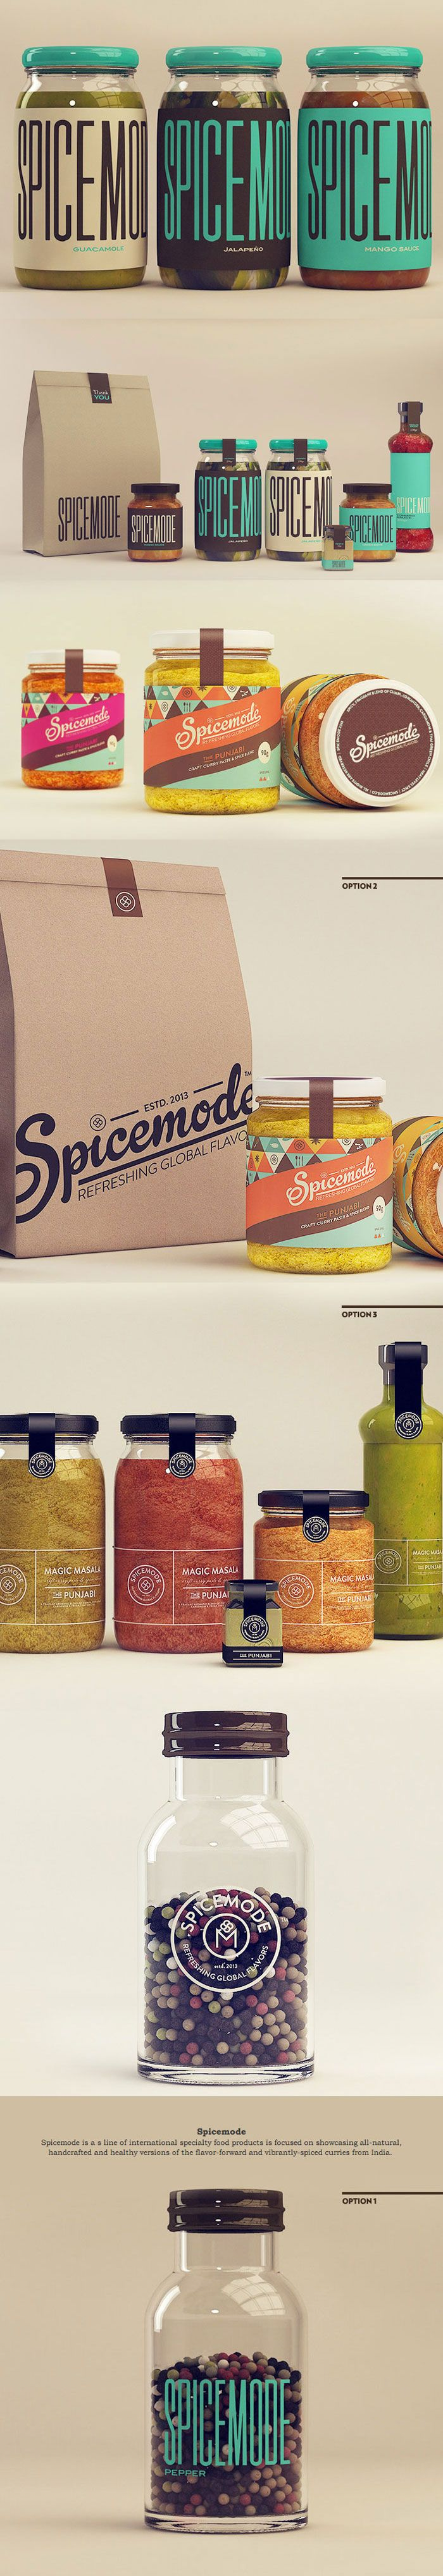 Branding #packaging design